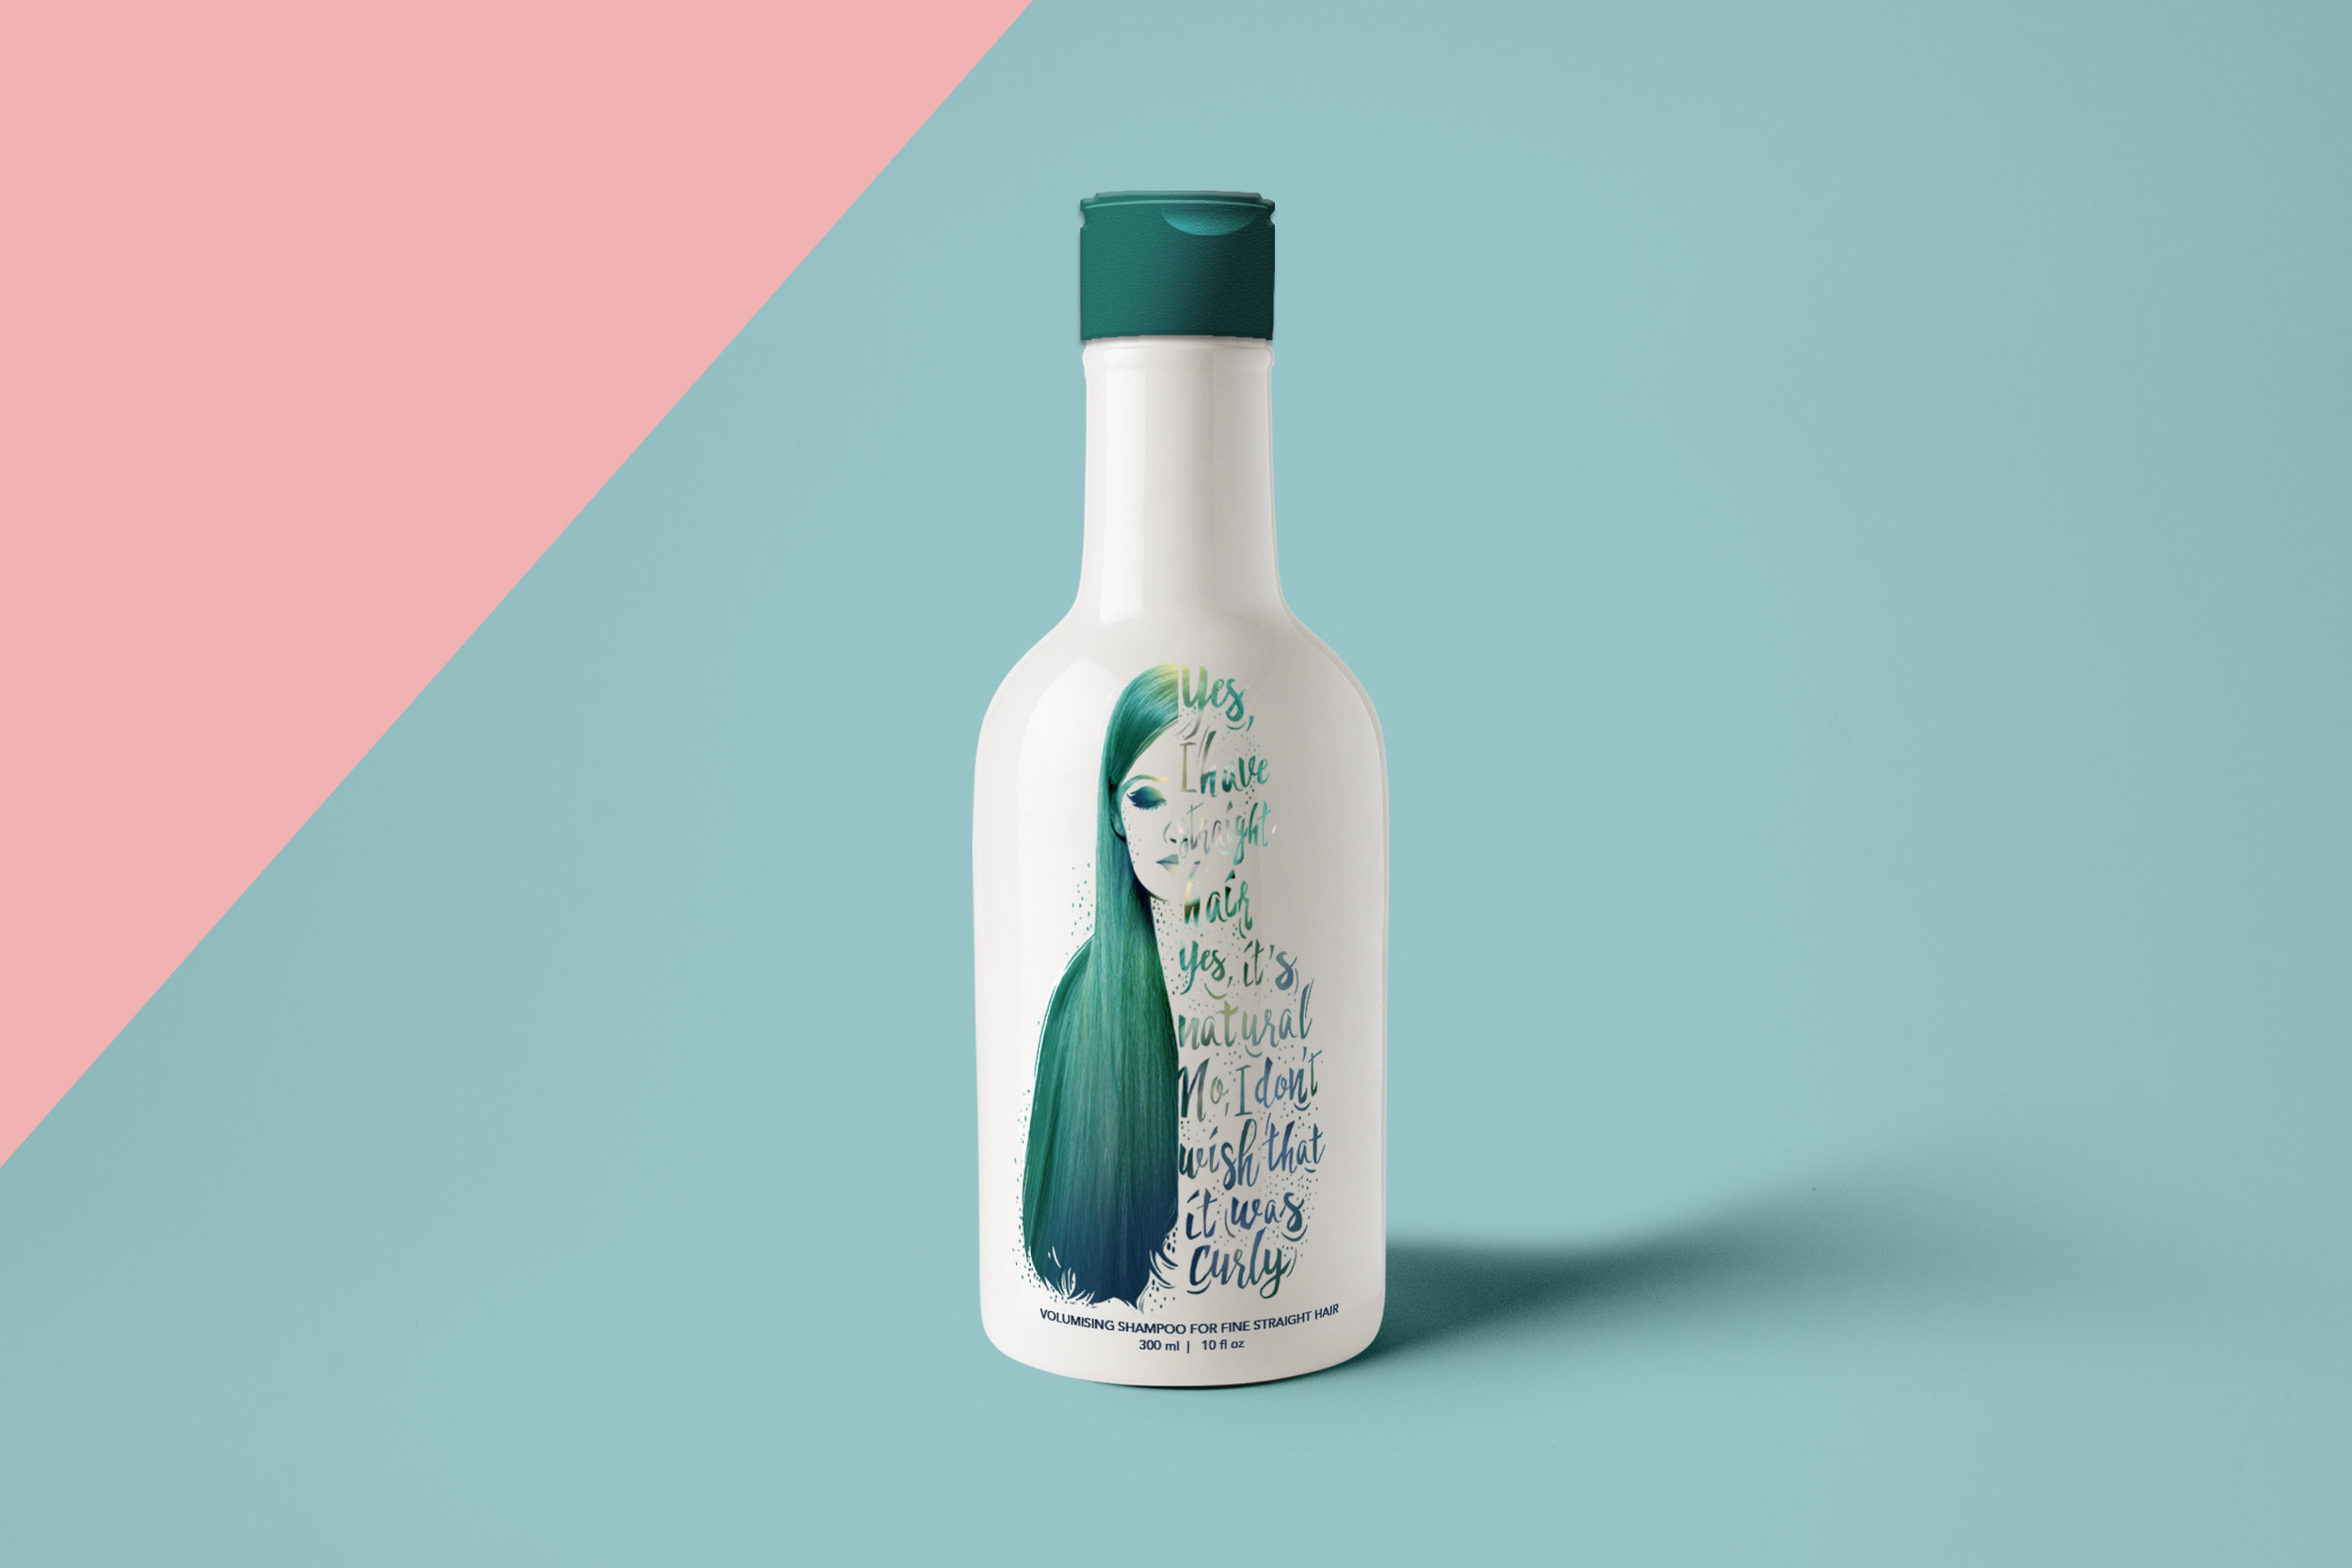 Ceramic Bottle PSD MockUp 2.jpg